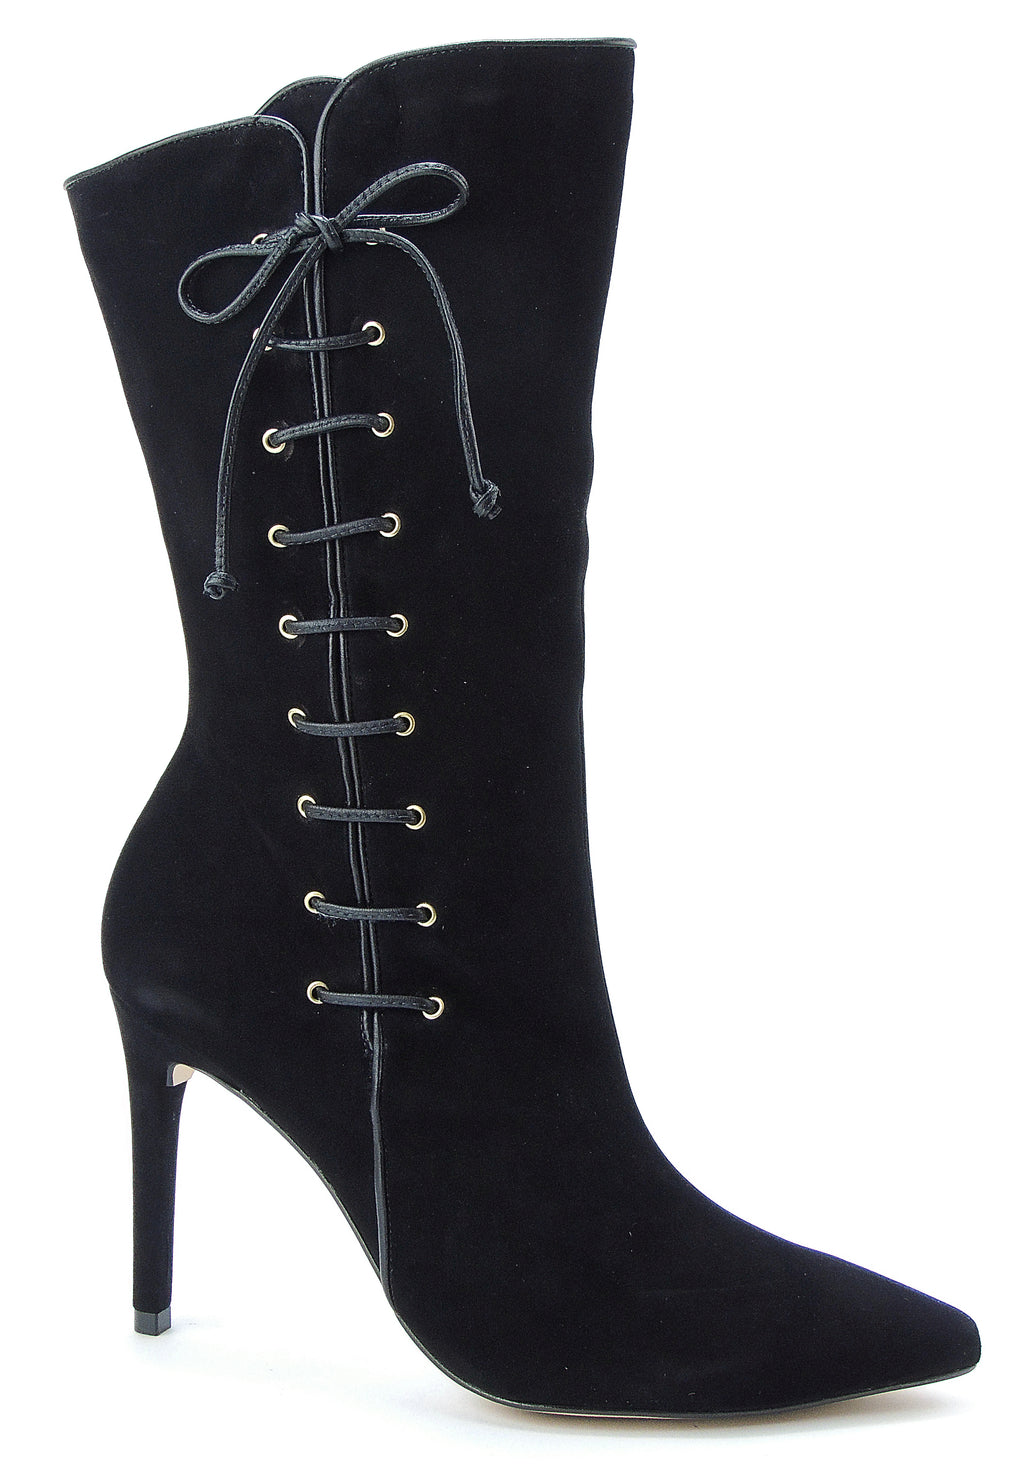 Black Nubuck Pointed Toe Lace Up Boots - ONE55 by Werner